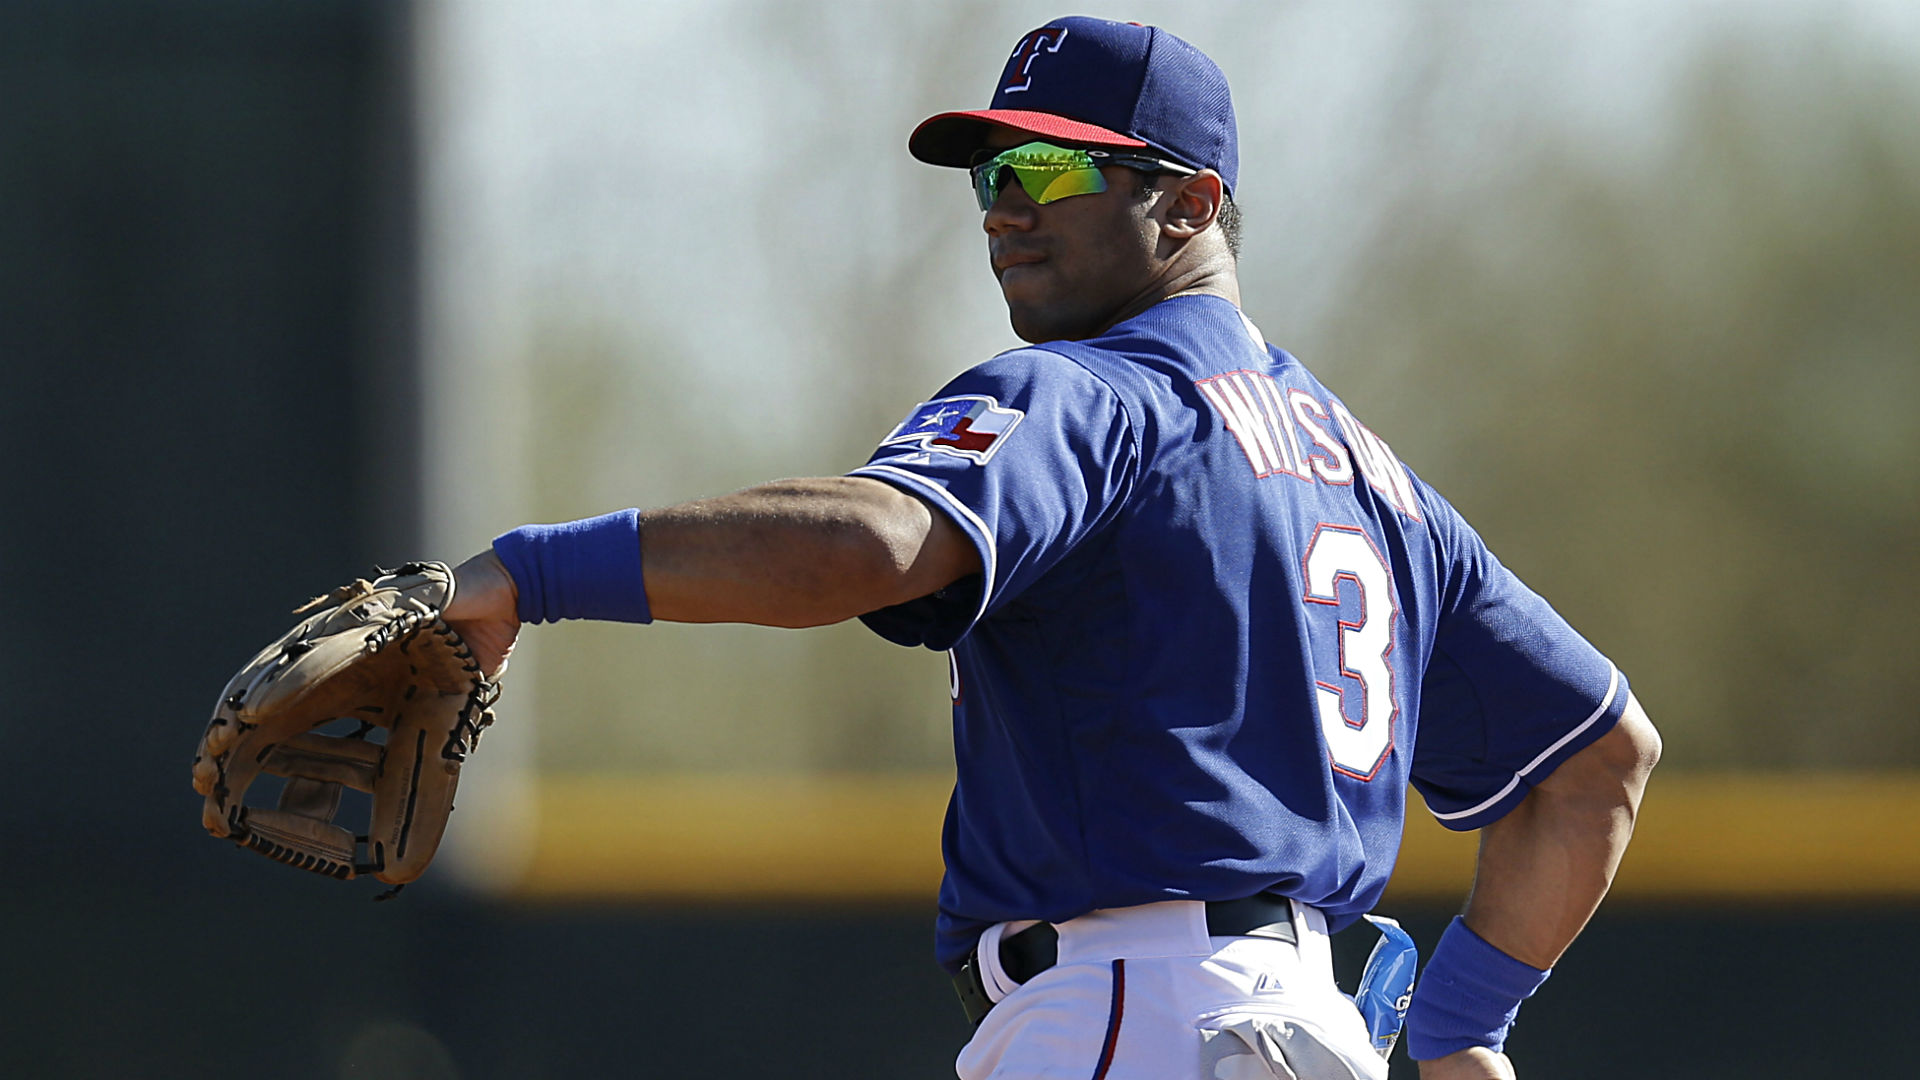 Russell Wilson: 'The Rangers want me to play baseball'